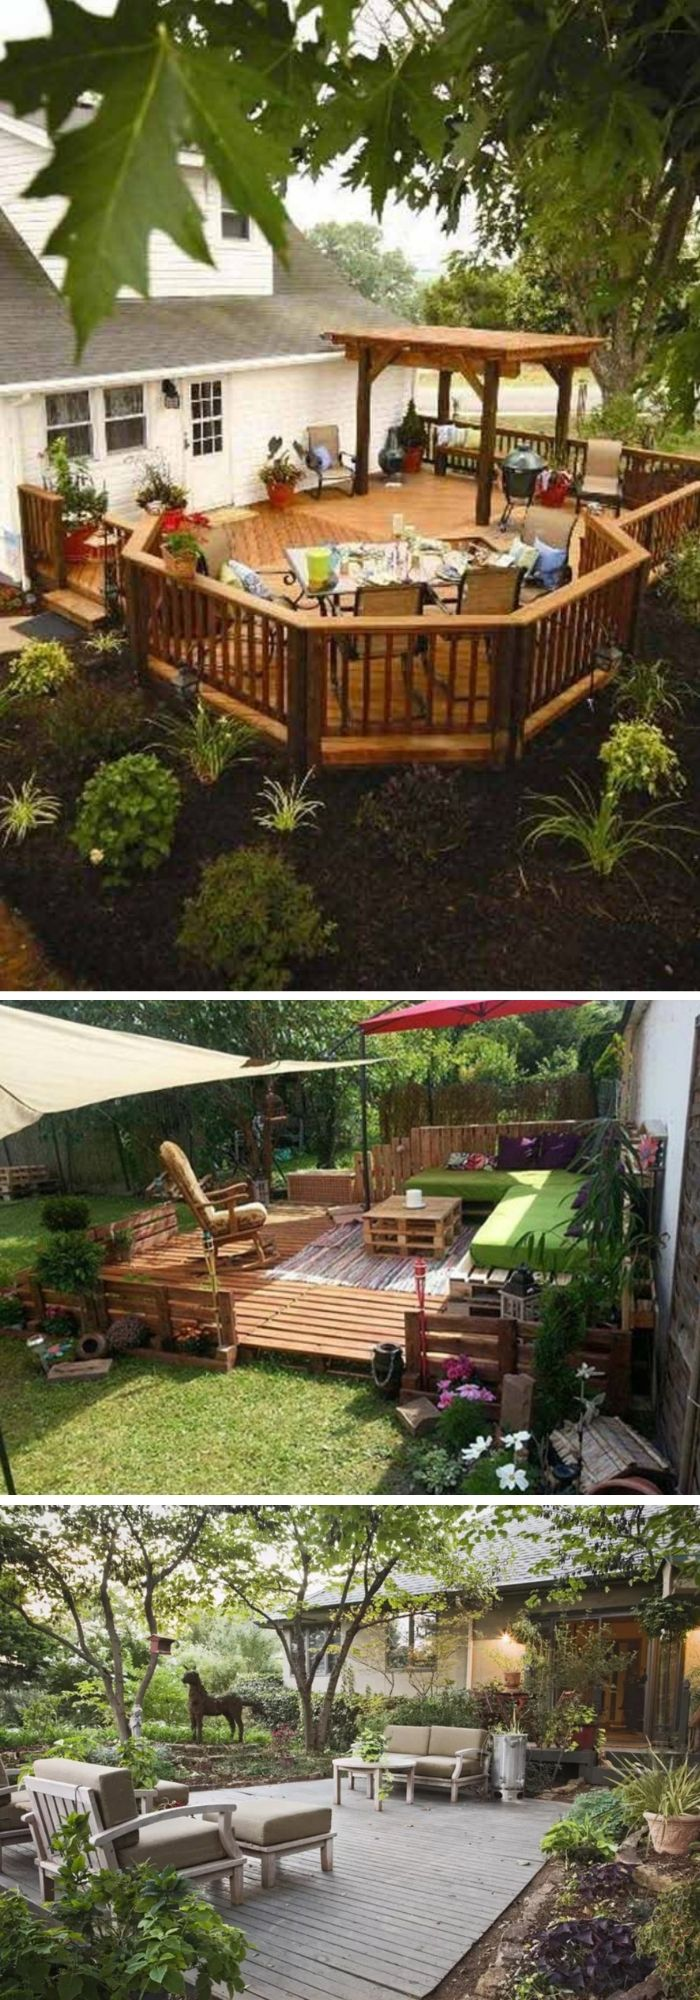 26+ Beautiful Deck Design Ideas For Your Backyard (Photos ...